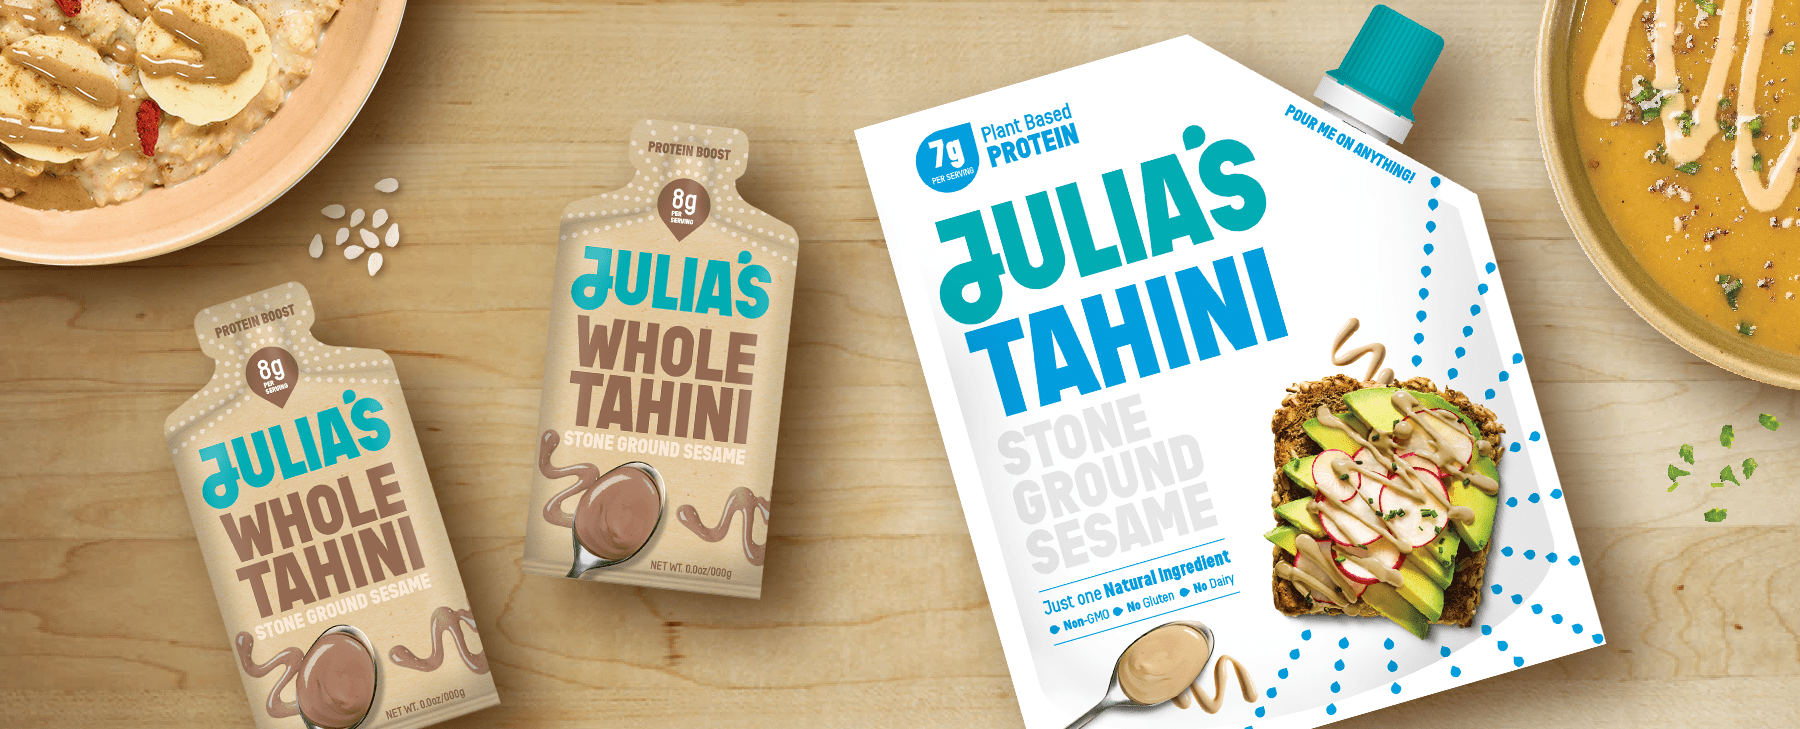 Julia's tahini sachets in brown and larger pouch in white sitting on a close up of a kitchen table with ingredients surrounding them